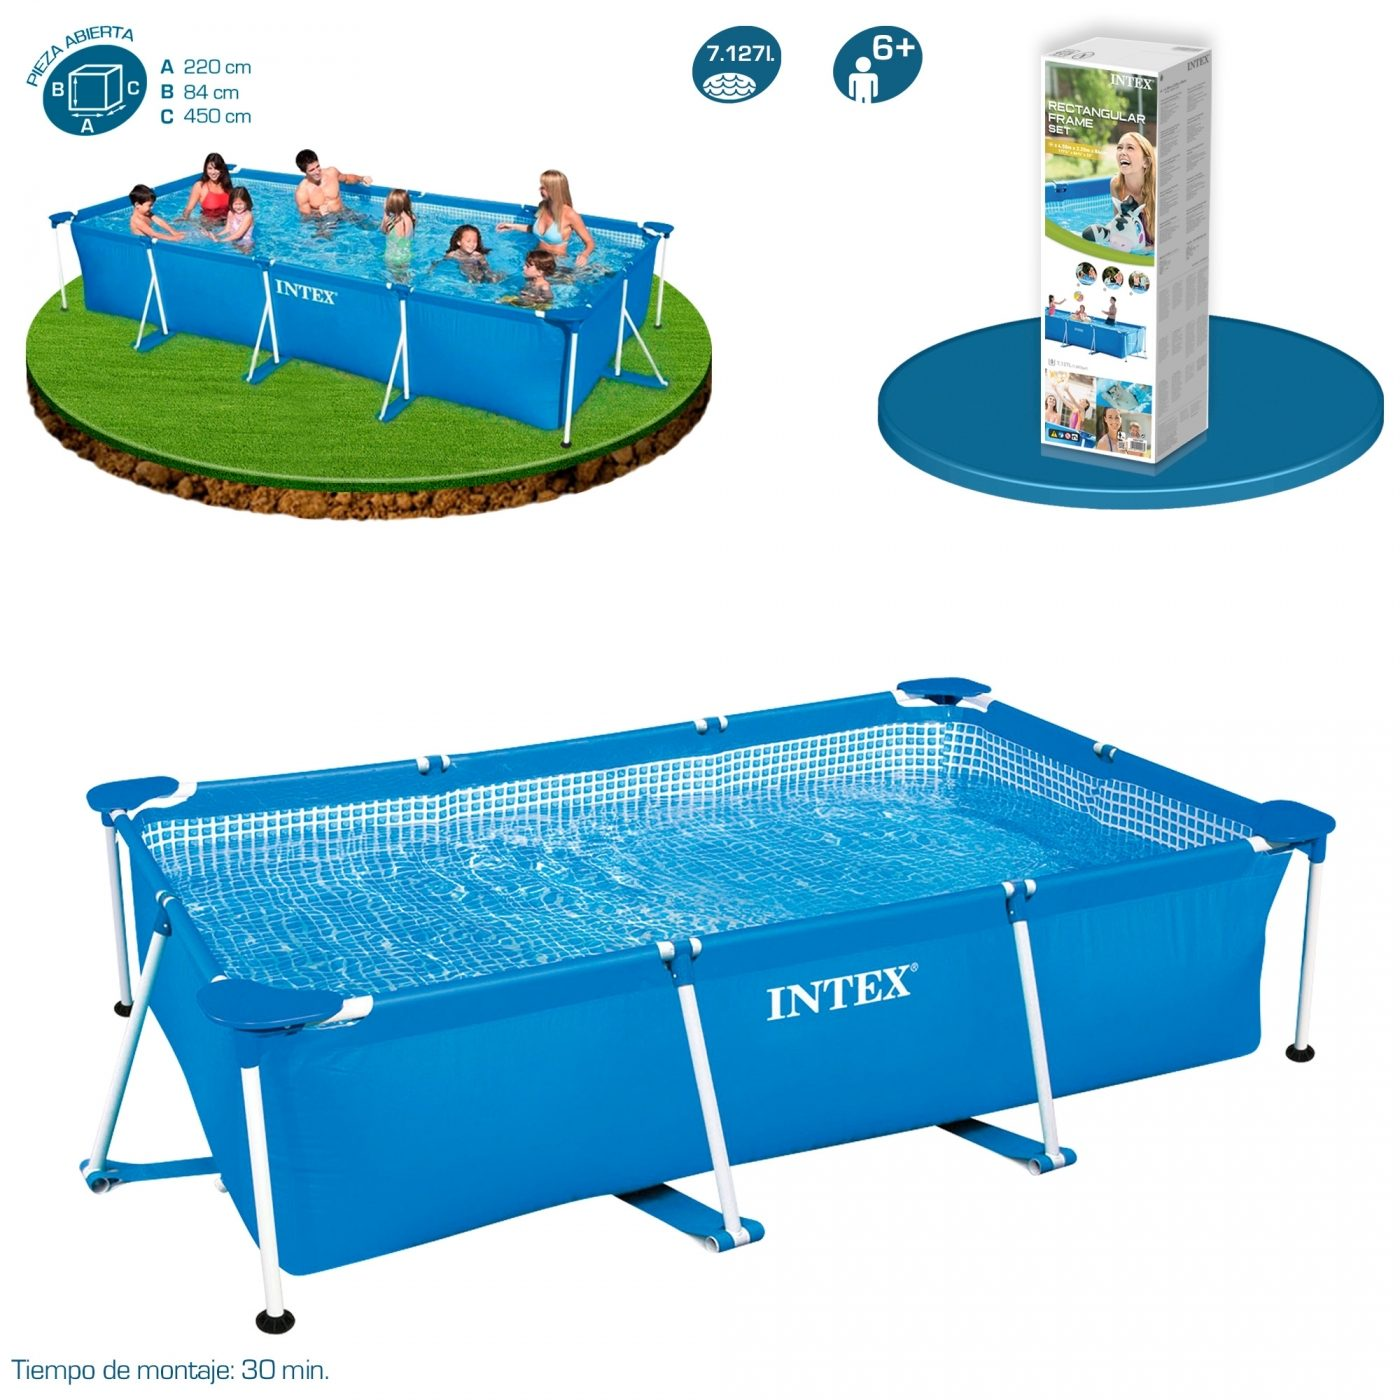 Piscinas Intex Site Piscina Metal Frame 450 X 220 X 84 Cm Intex Em Planeta Huerto